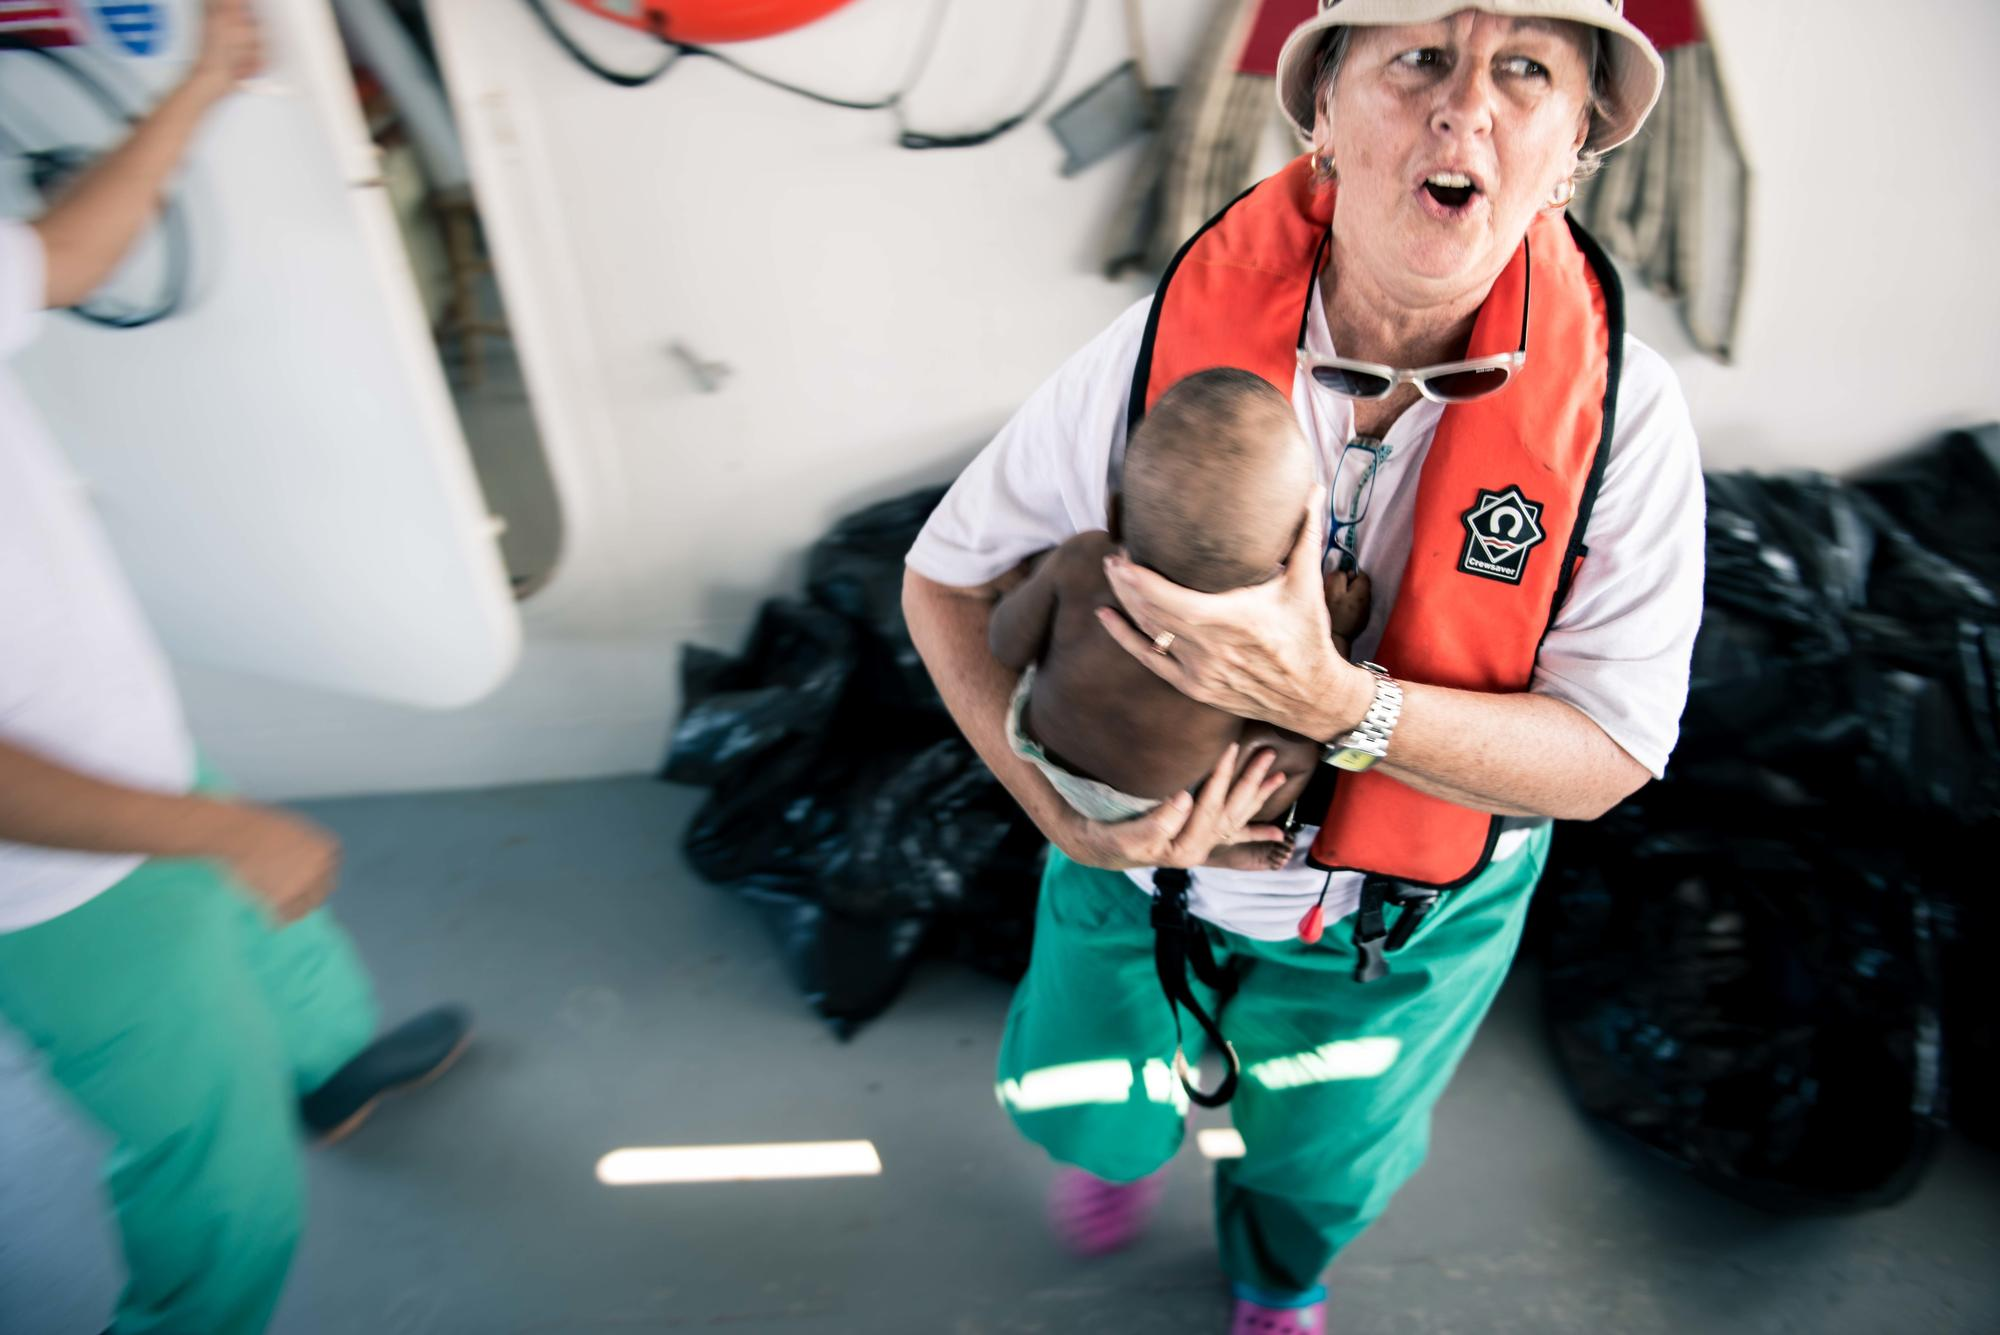 An MSF worker on a ship wearing a life jacket holds a small baby.